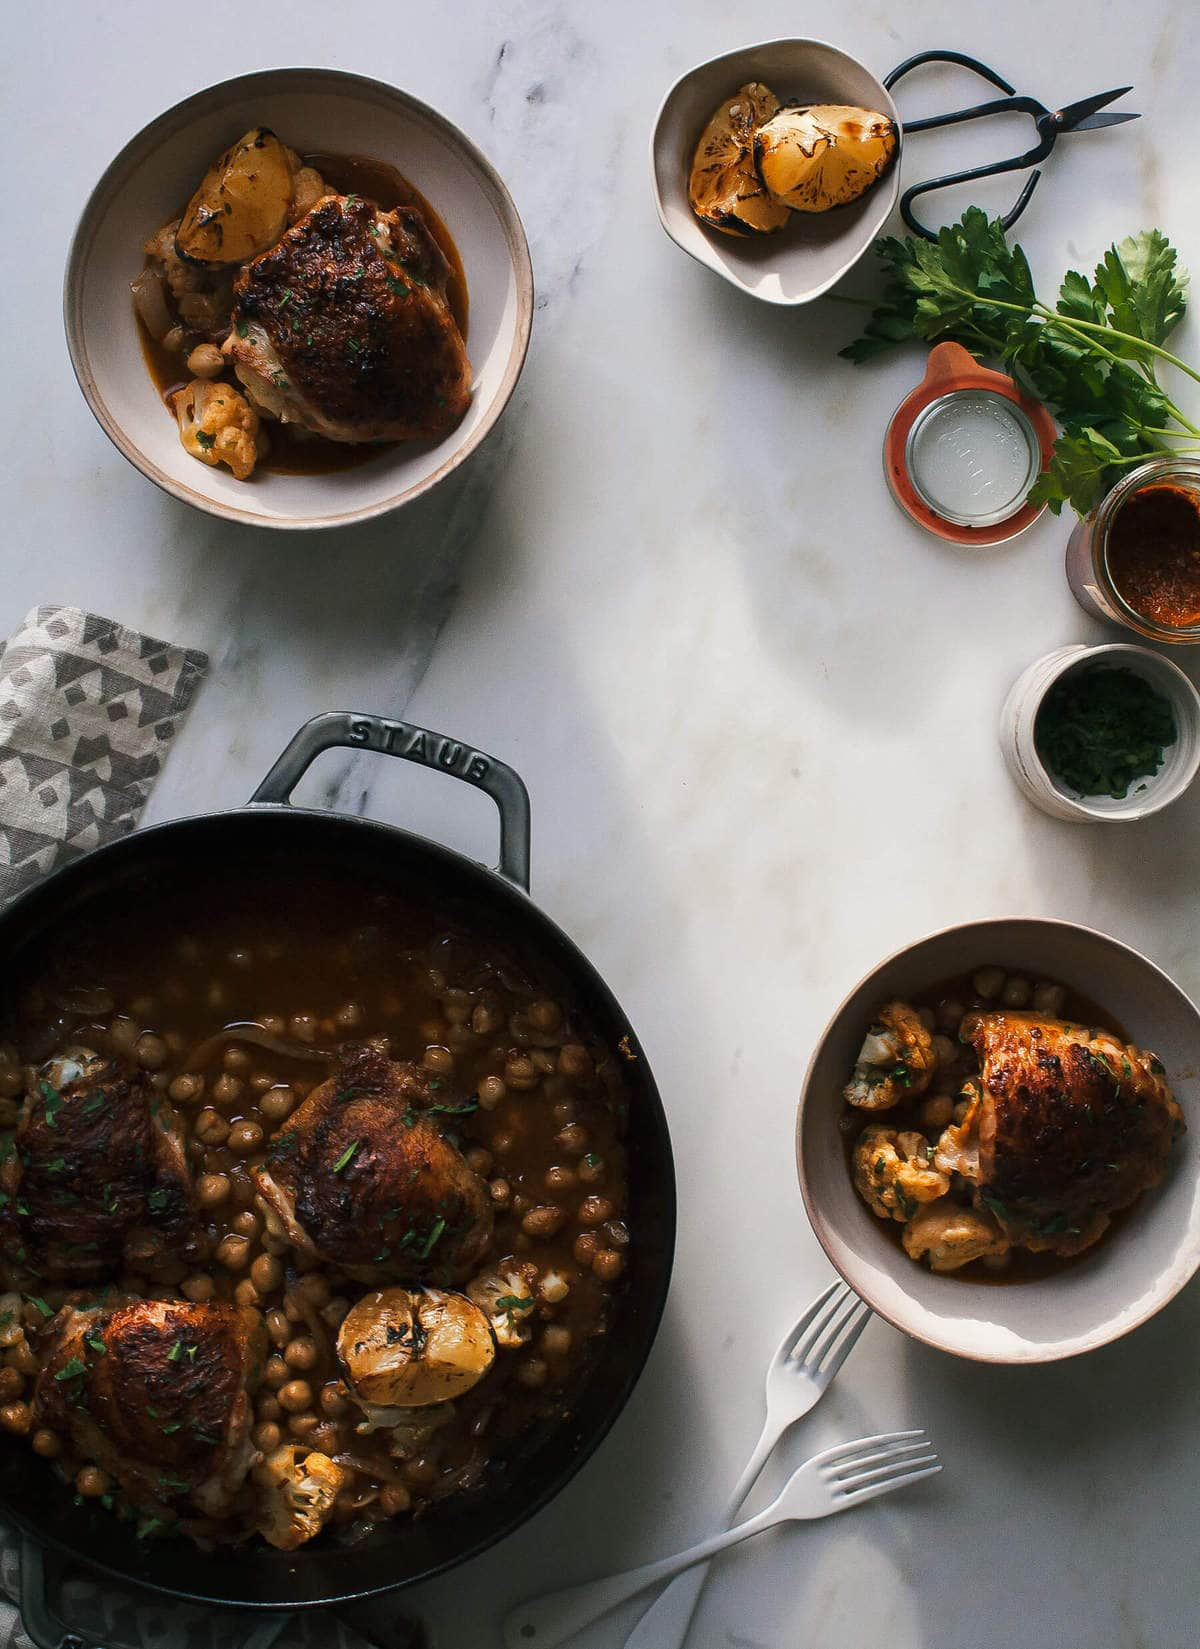 Homemade Harissa + Roasted Harissa Chicken with Chickpeas & Cauliflower